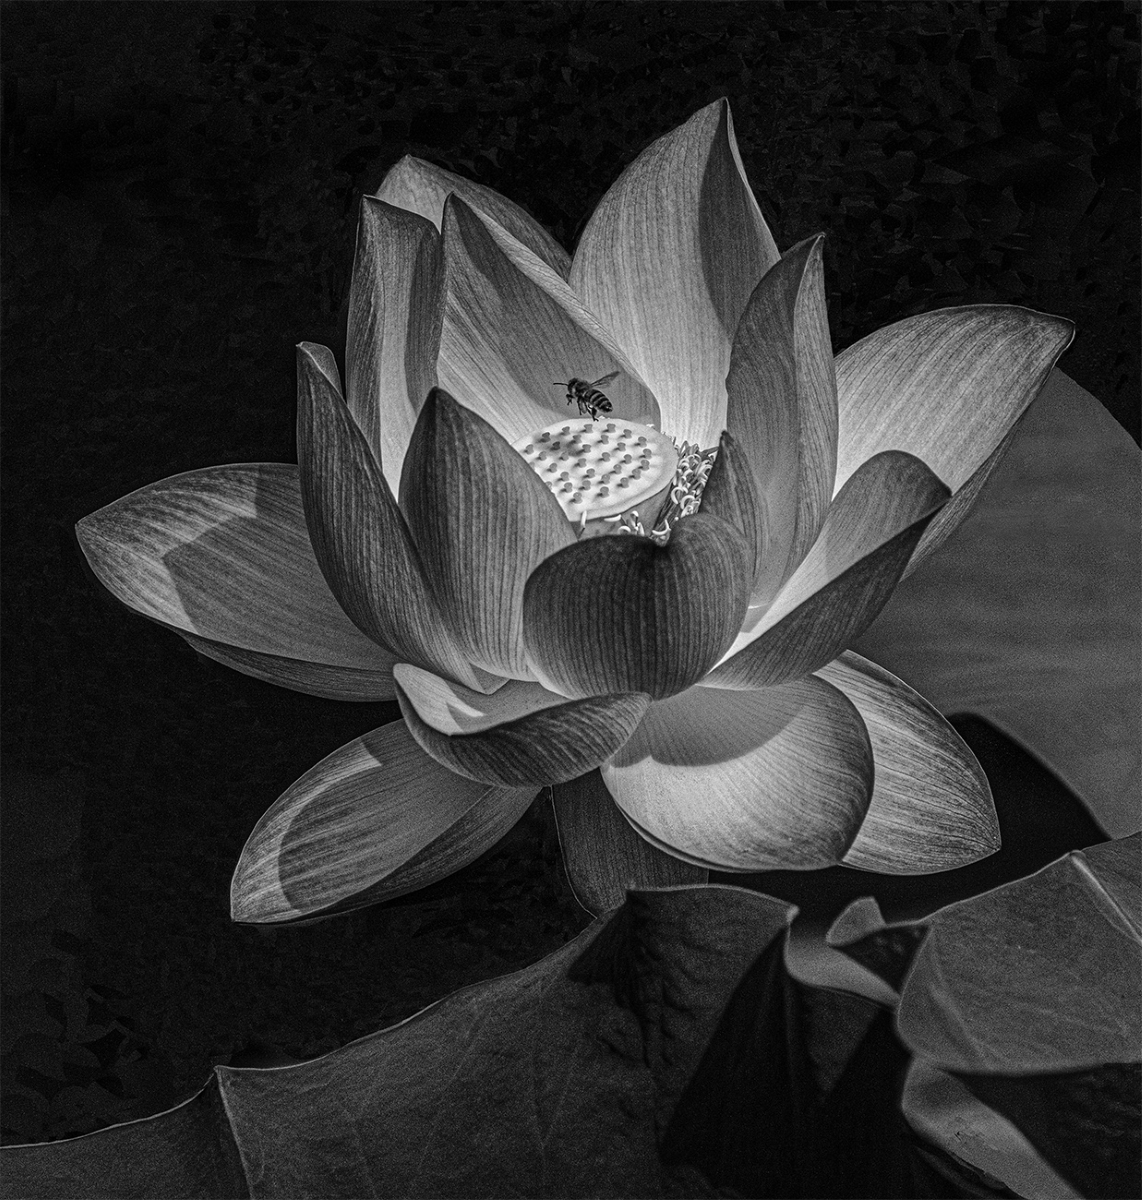 Pollinator-approaching-Lotus-Flower.-MB-1-Place-by-Renate-Johnson-LV